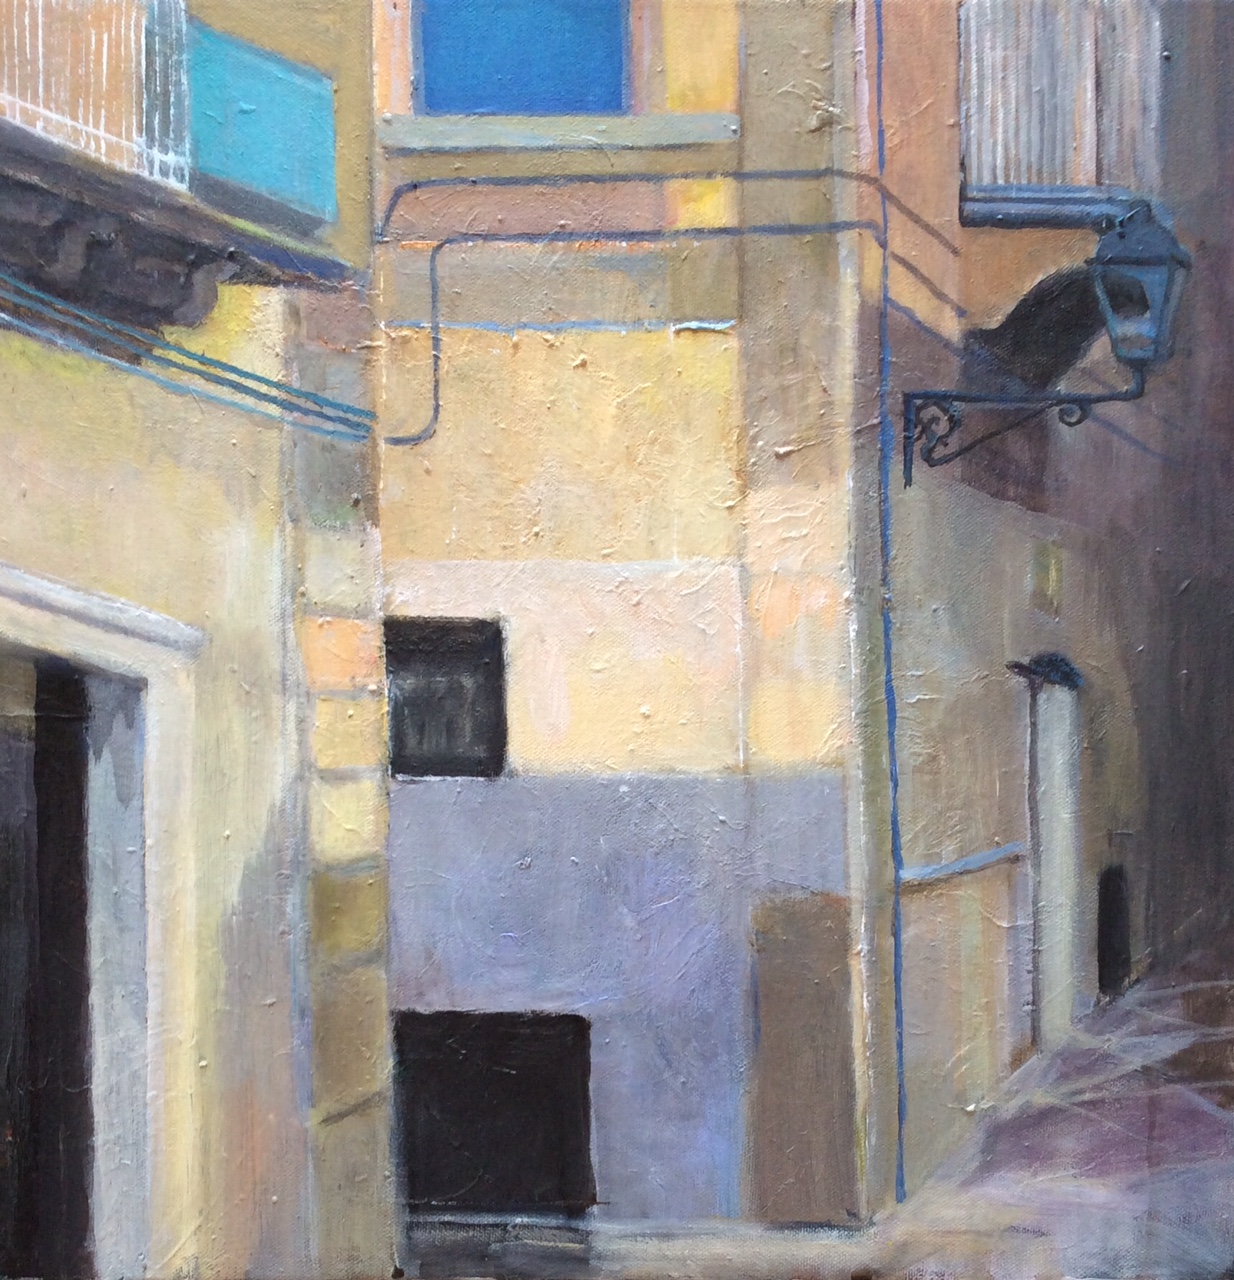 Unexpected Corner, Siracusa, Sicily - acrylic on canvas